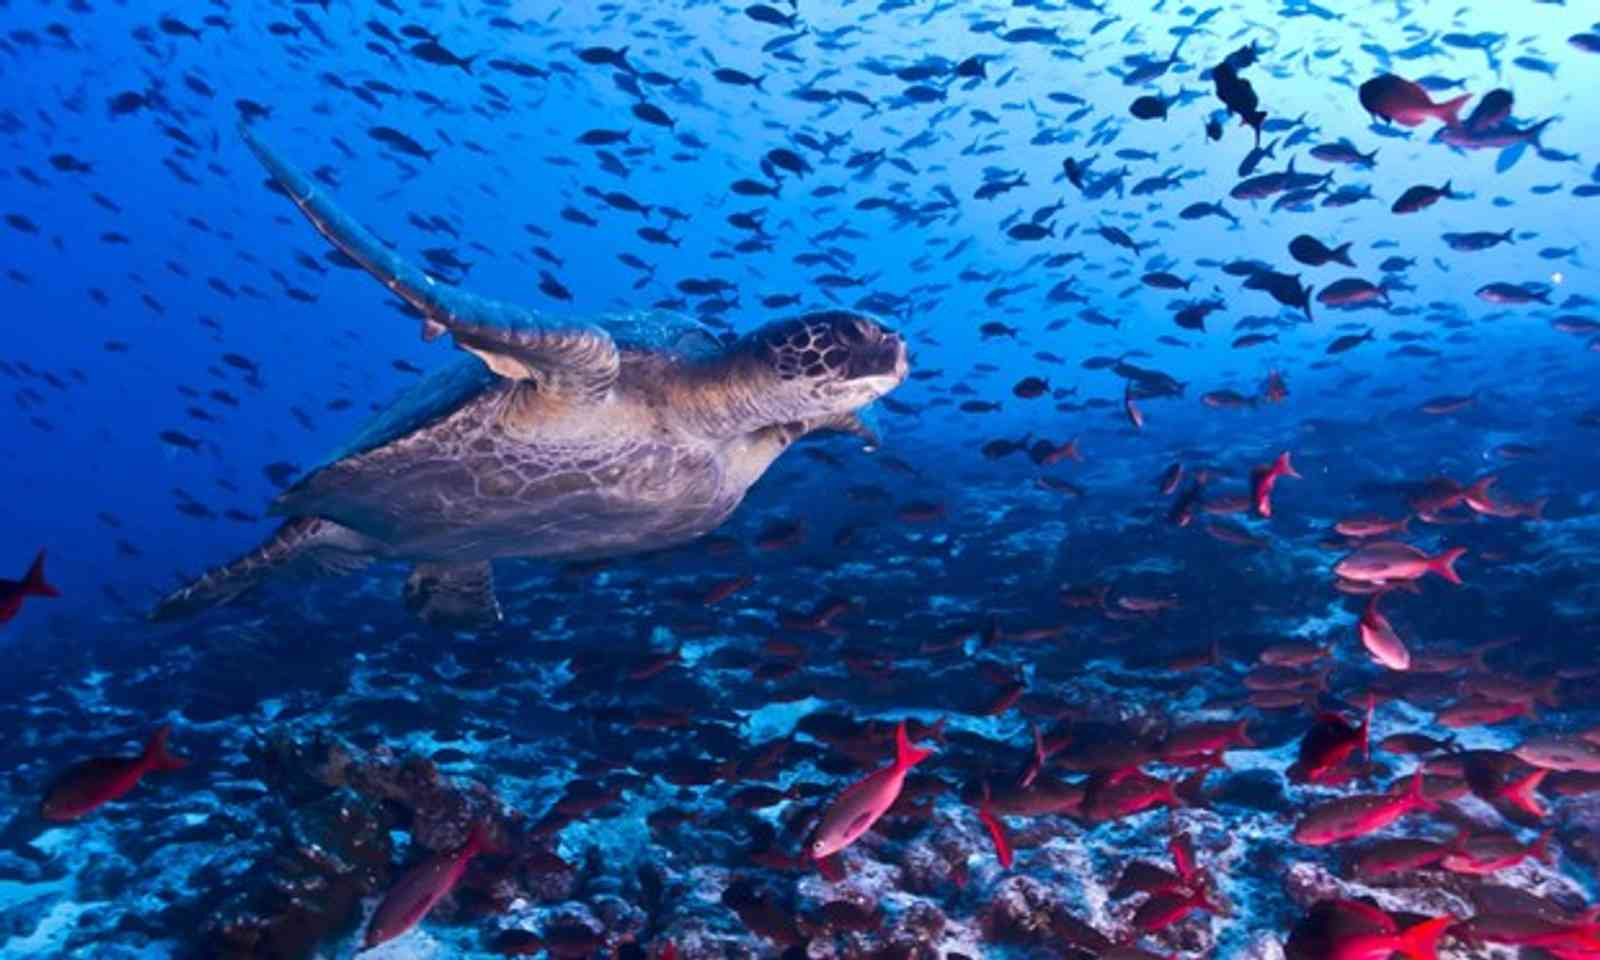 Turtle and fish in Galapagos (Shutterstock.com)